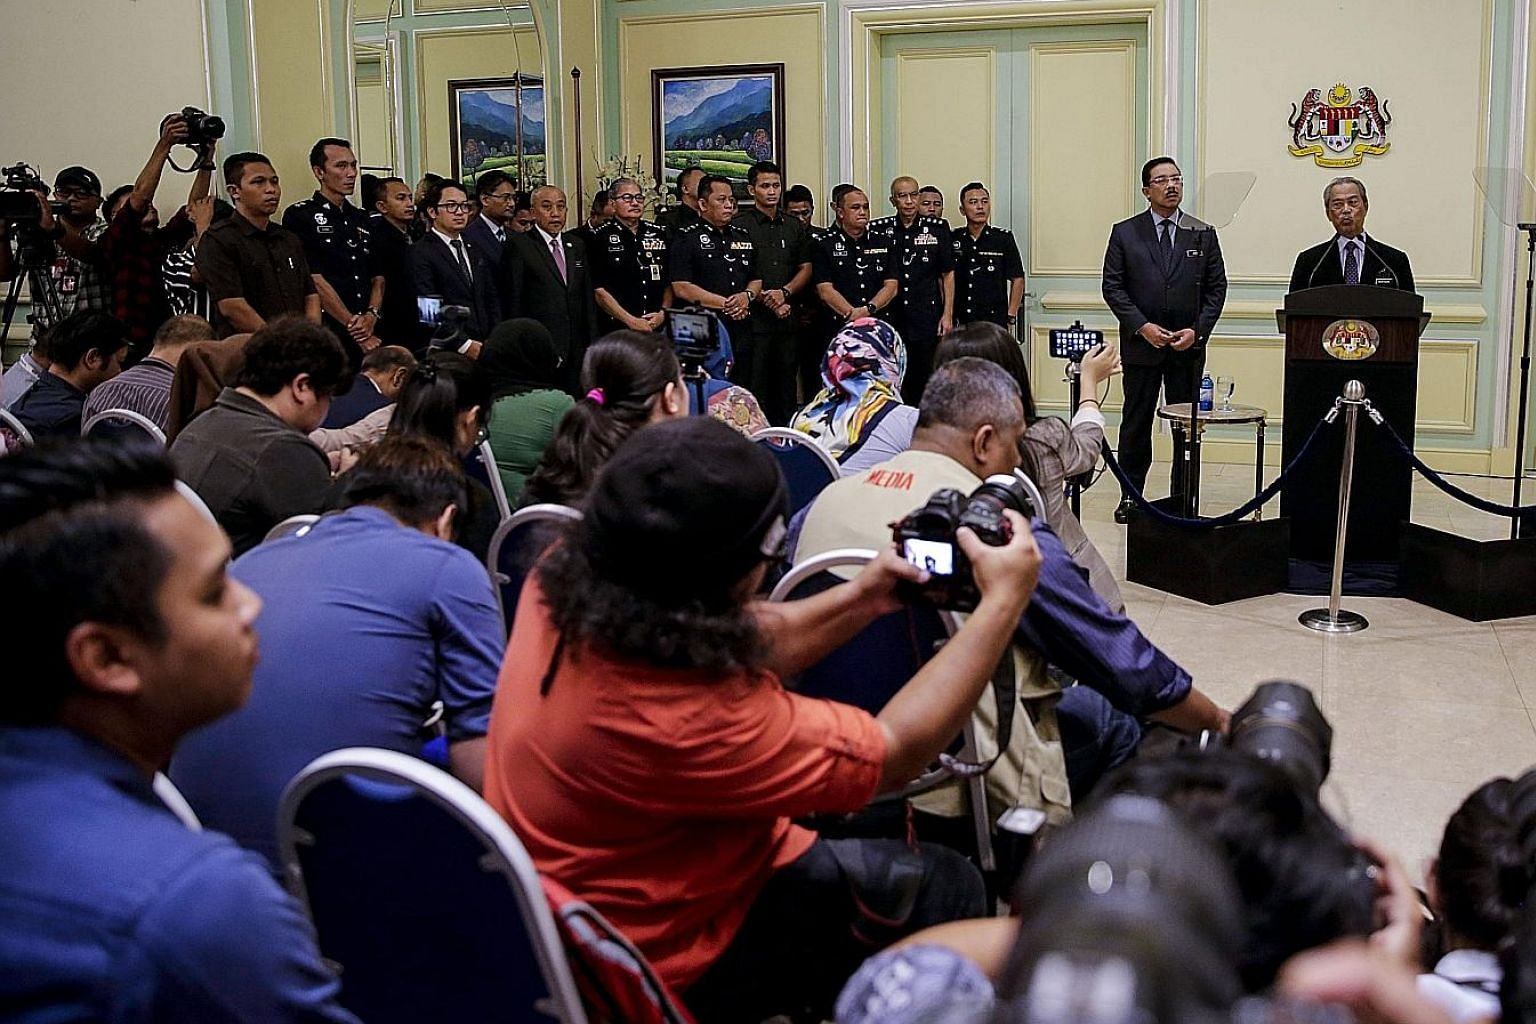 Malaysian Prime Minister Muhyiddin Yassin speaking at a news conference in Putrajaya yesterday.